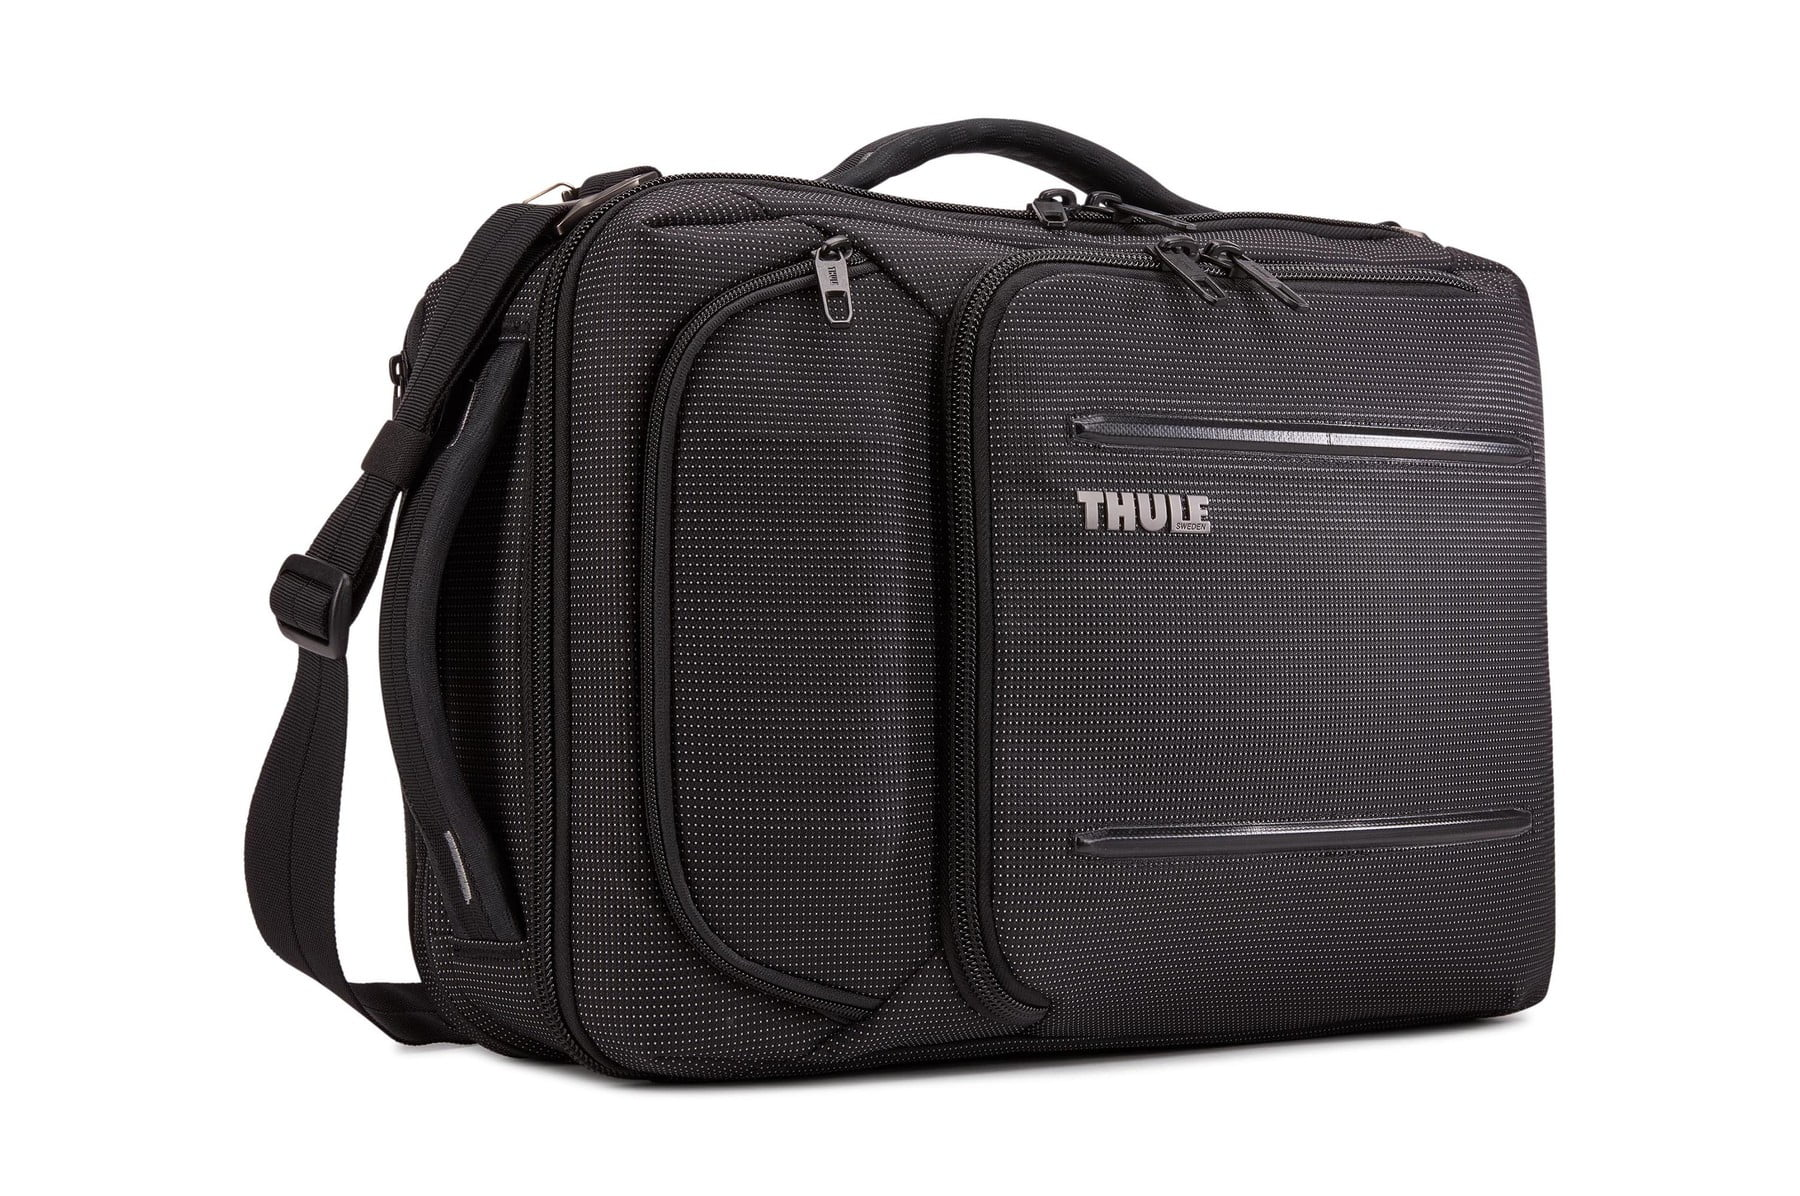 Geanta laptop Thule Crossover 2 Convertible Laptop Bag 15.6 inchi Black 7